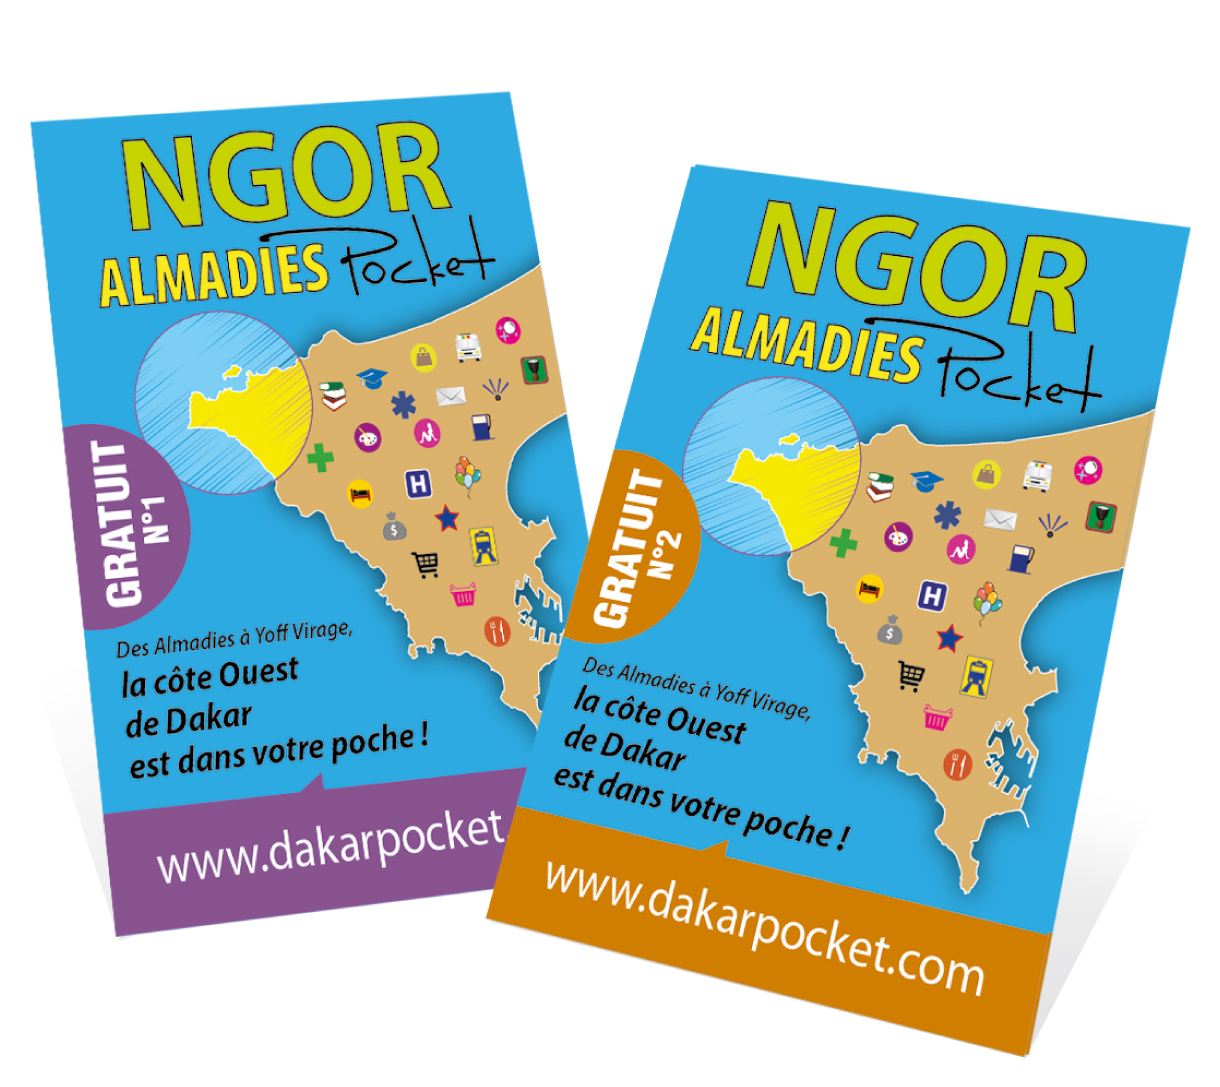 Ngor almadies pocket edition 2017